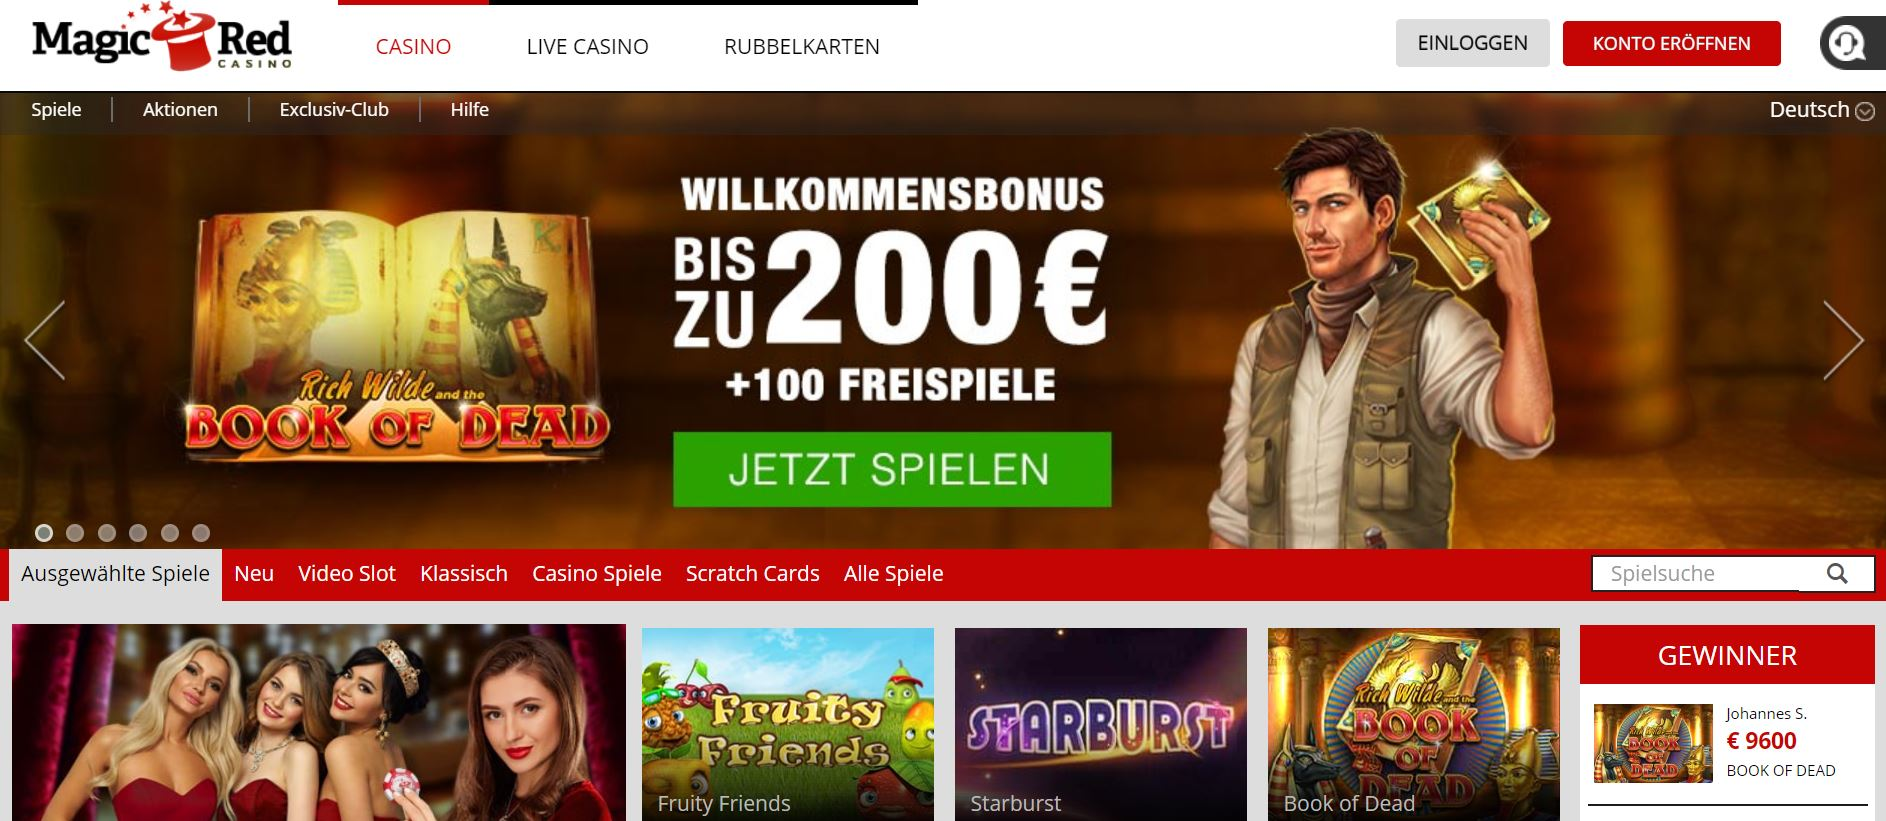 Magic Red Casino Vorschau